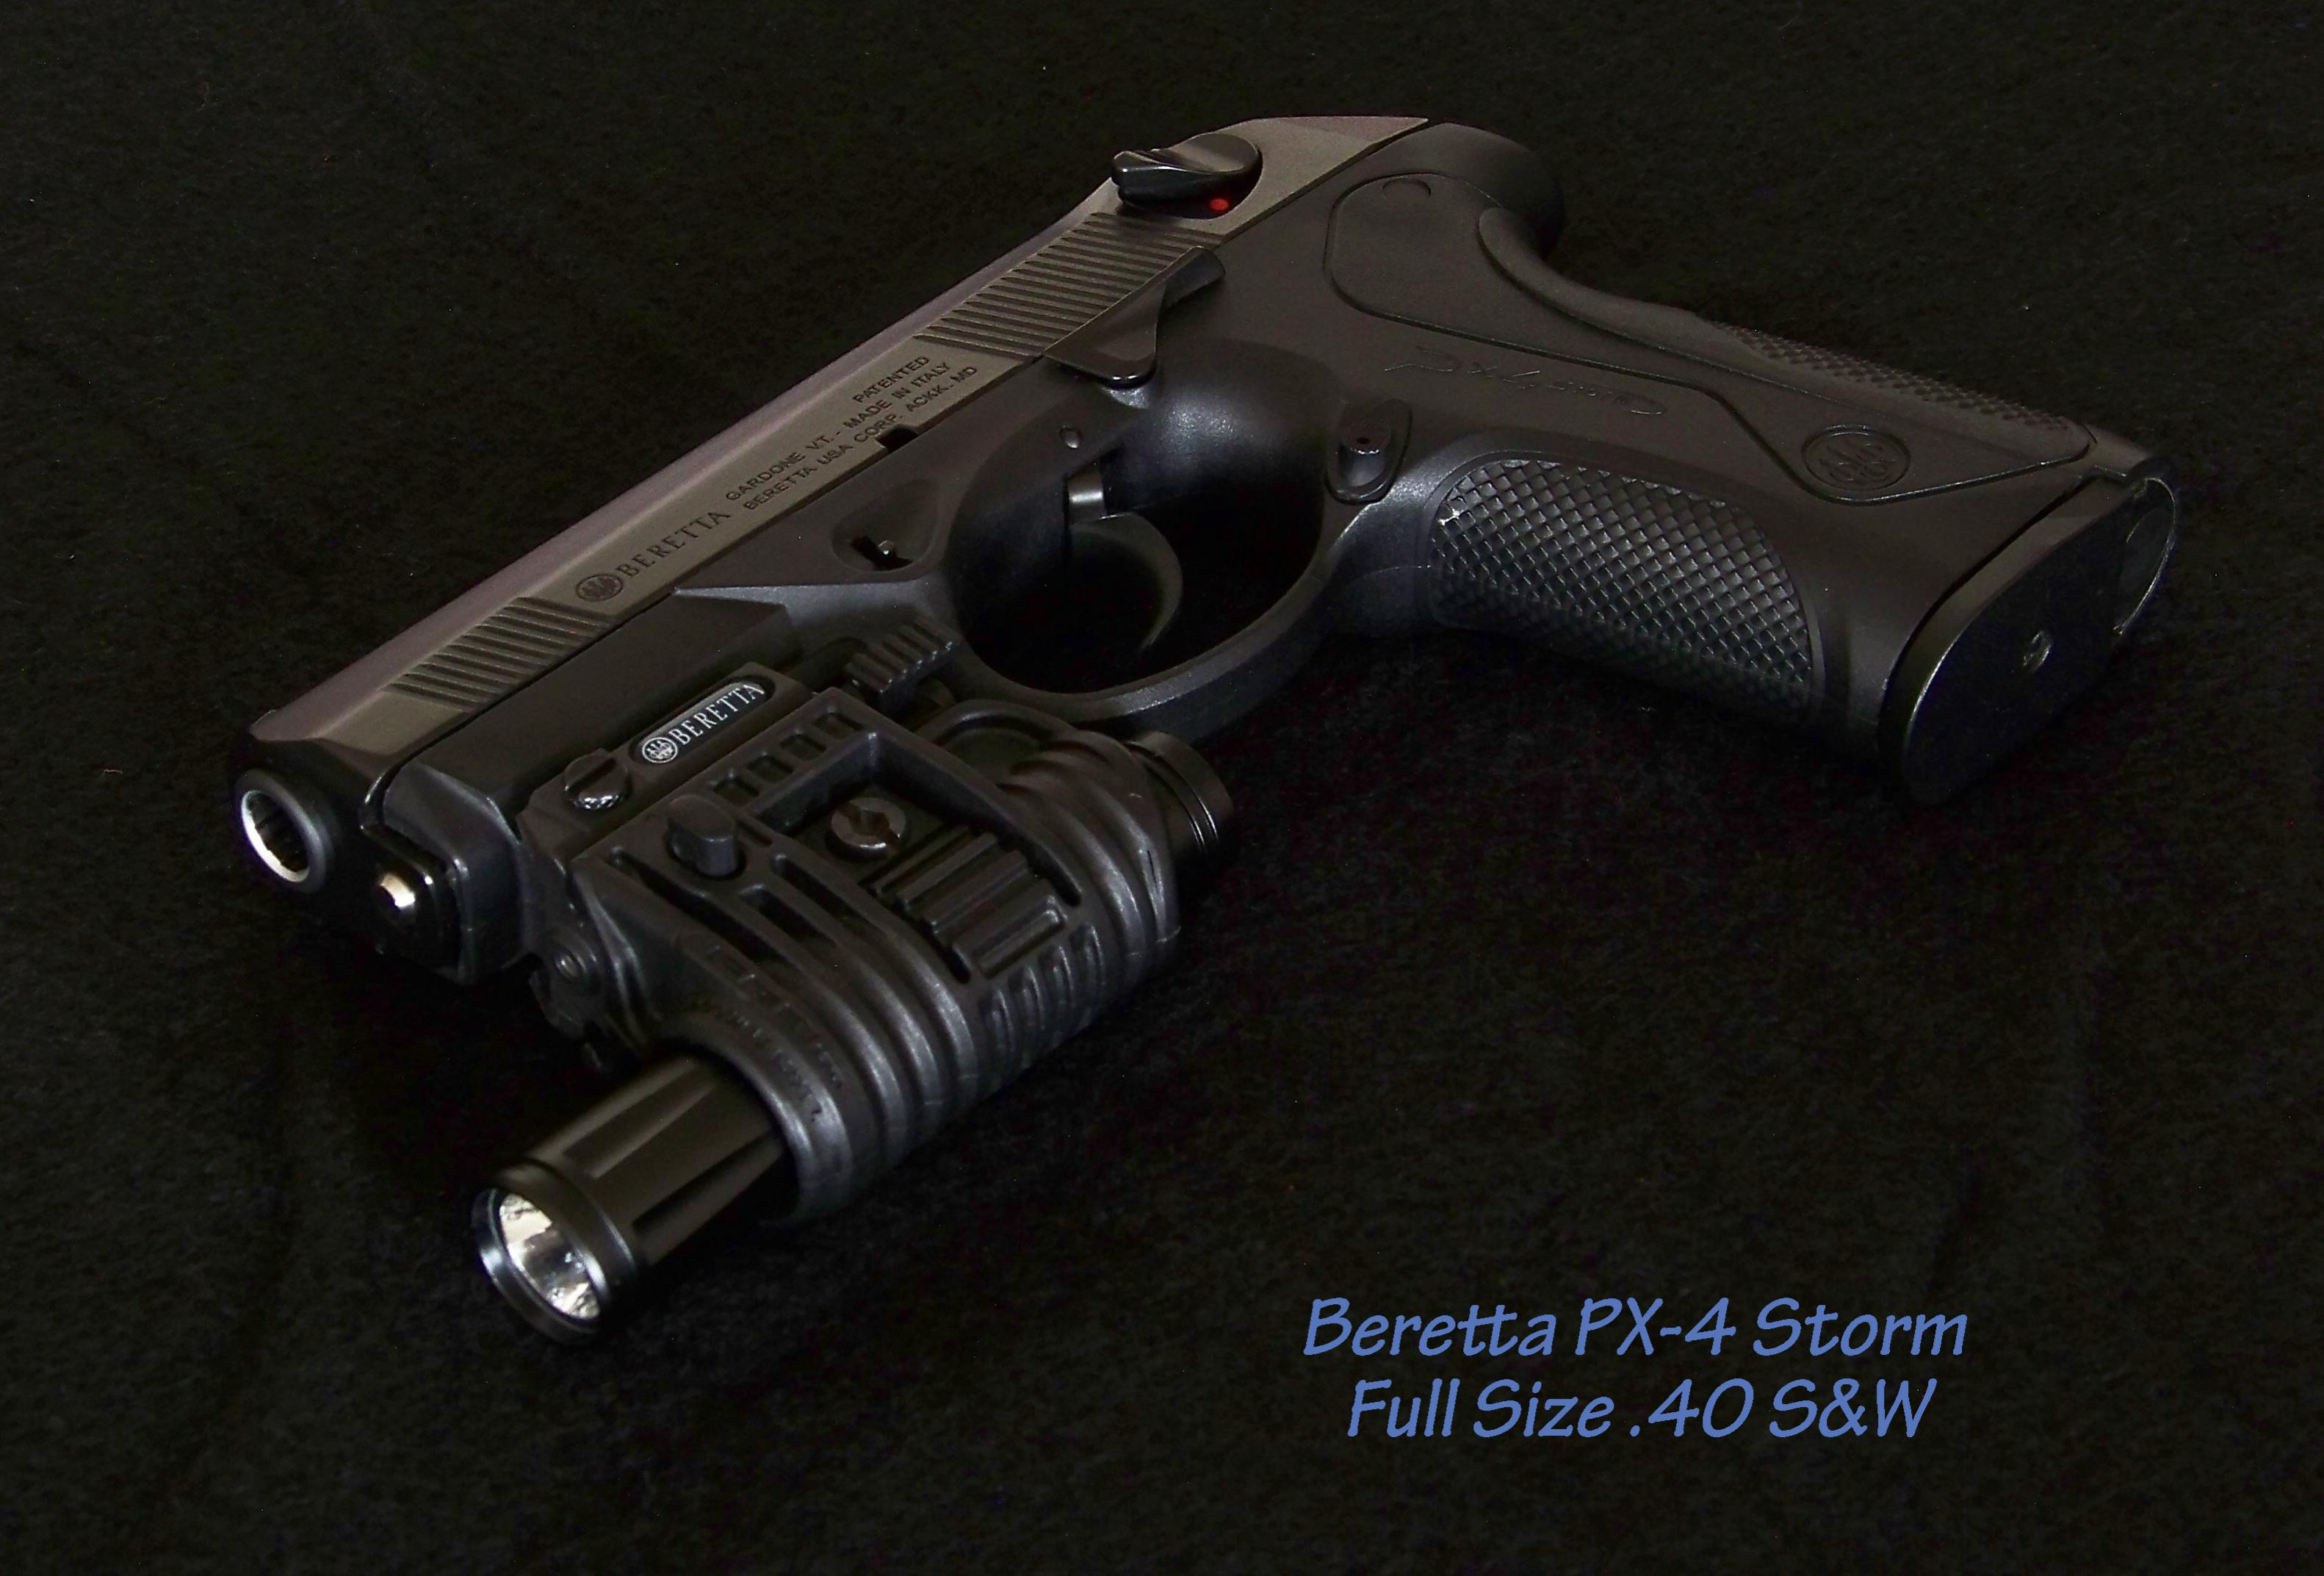 Affordable light that fits glock and picatinny rails-100_2772_edited-3.jpg